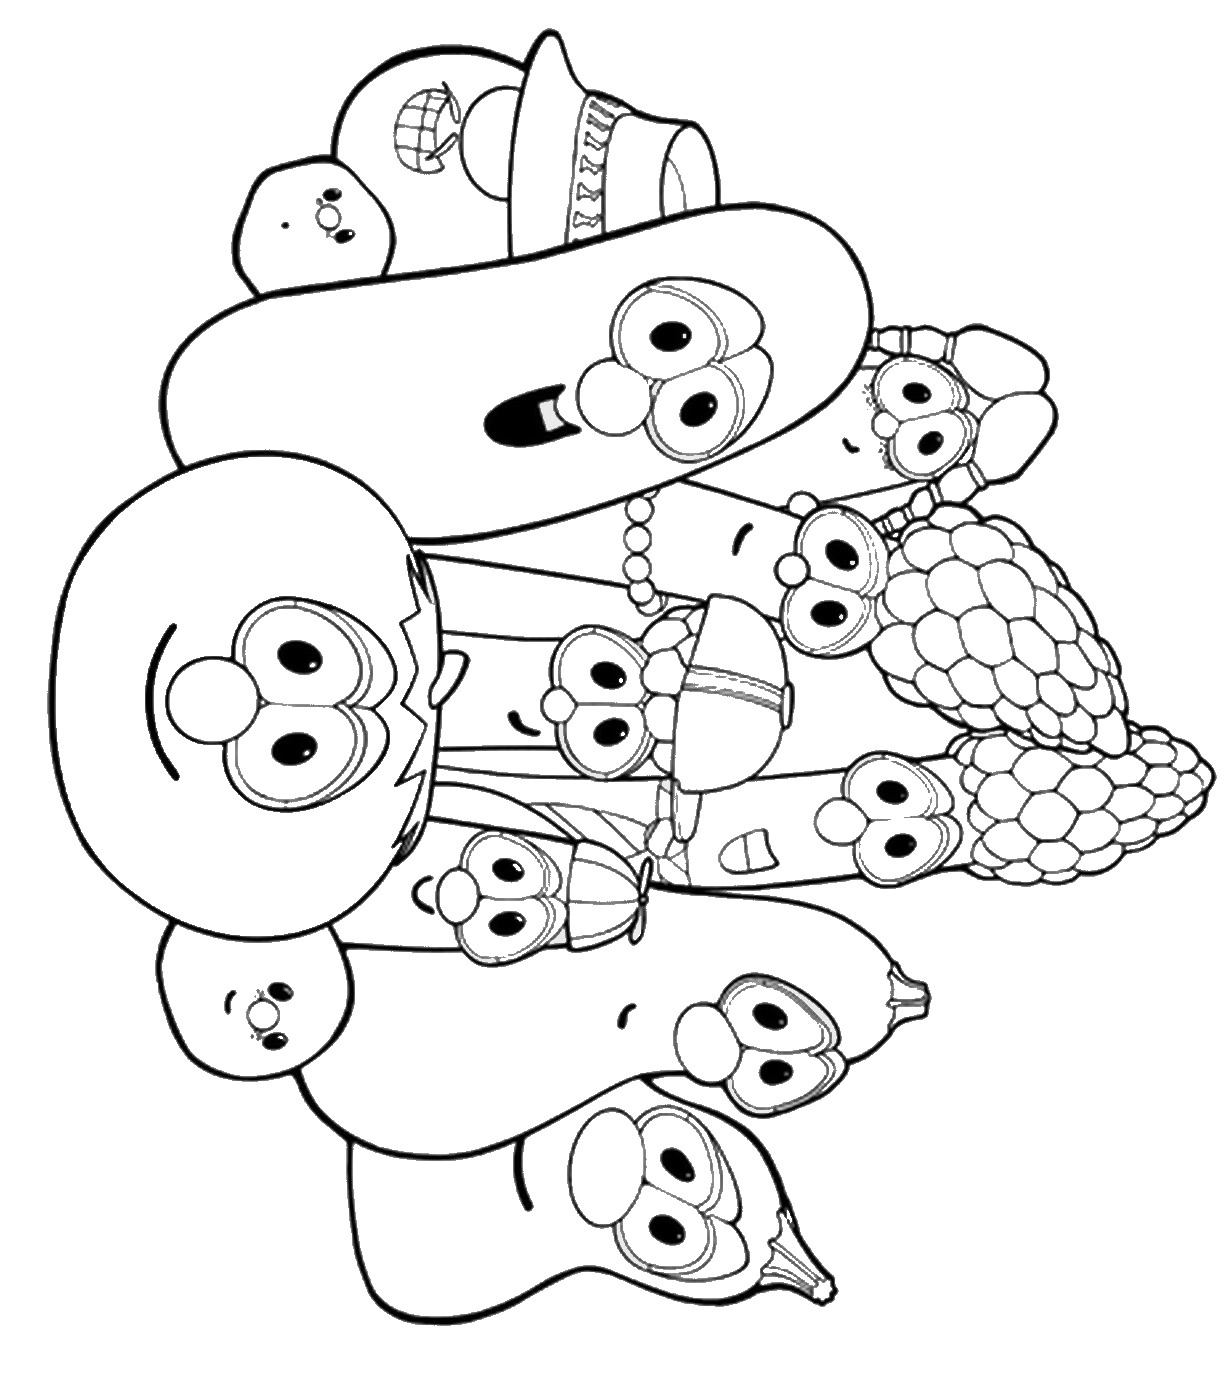 veggie tales coloring pages veggie tales coloring pages download and print for free